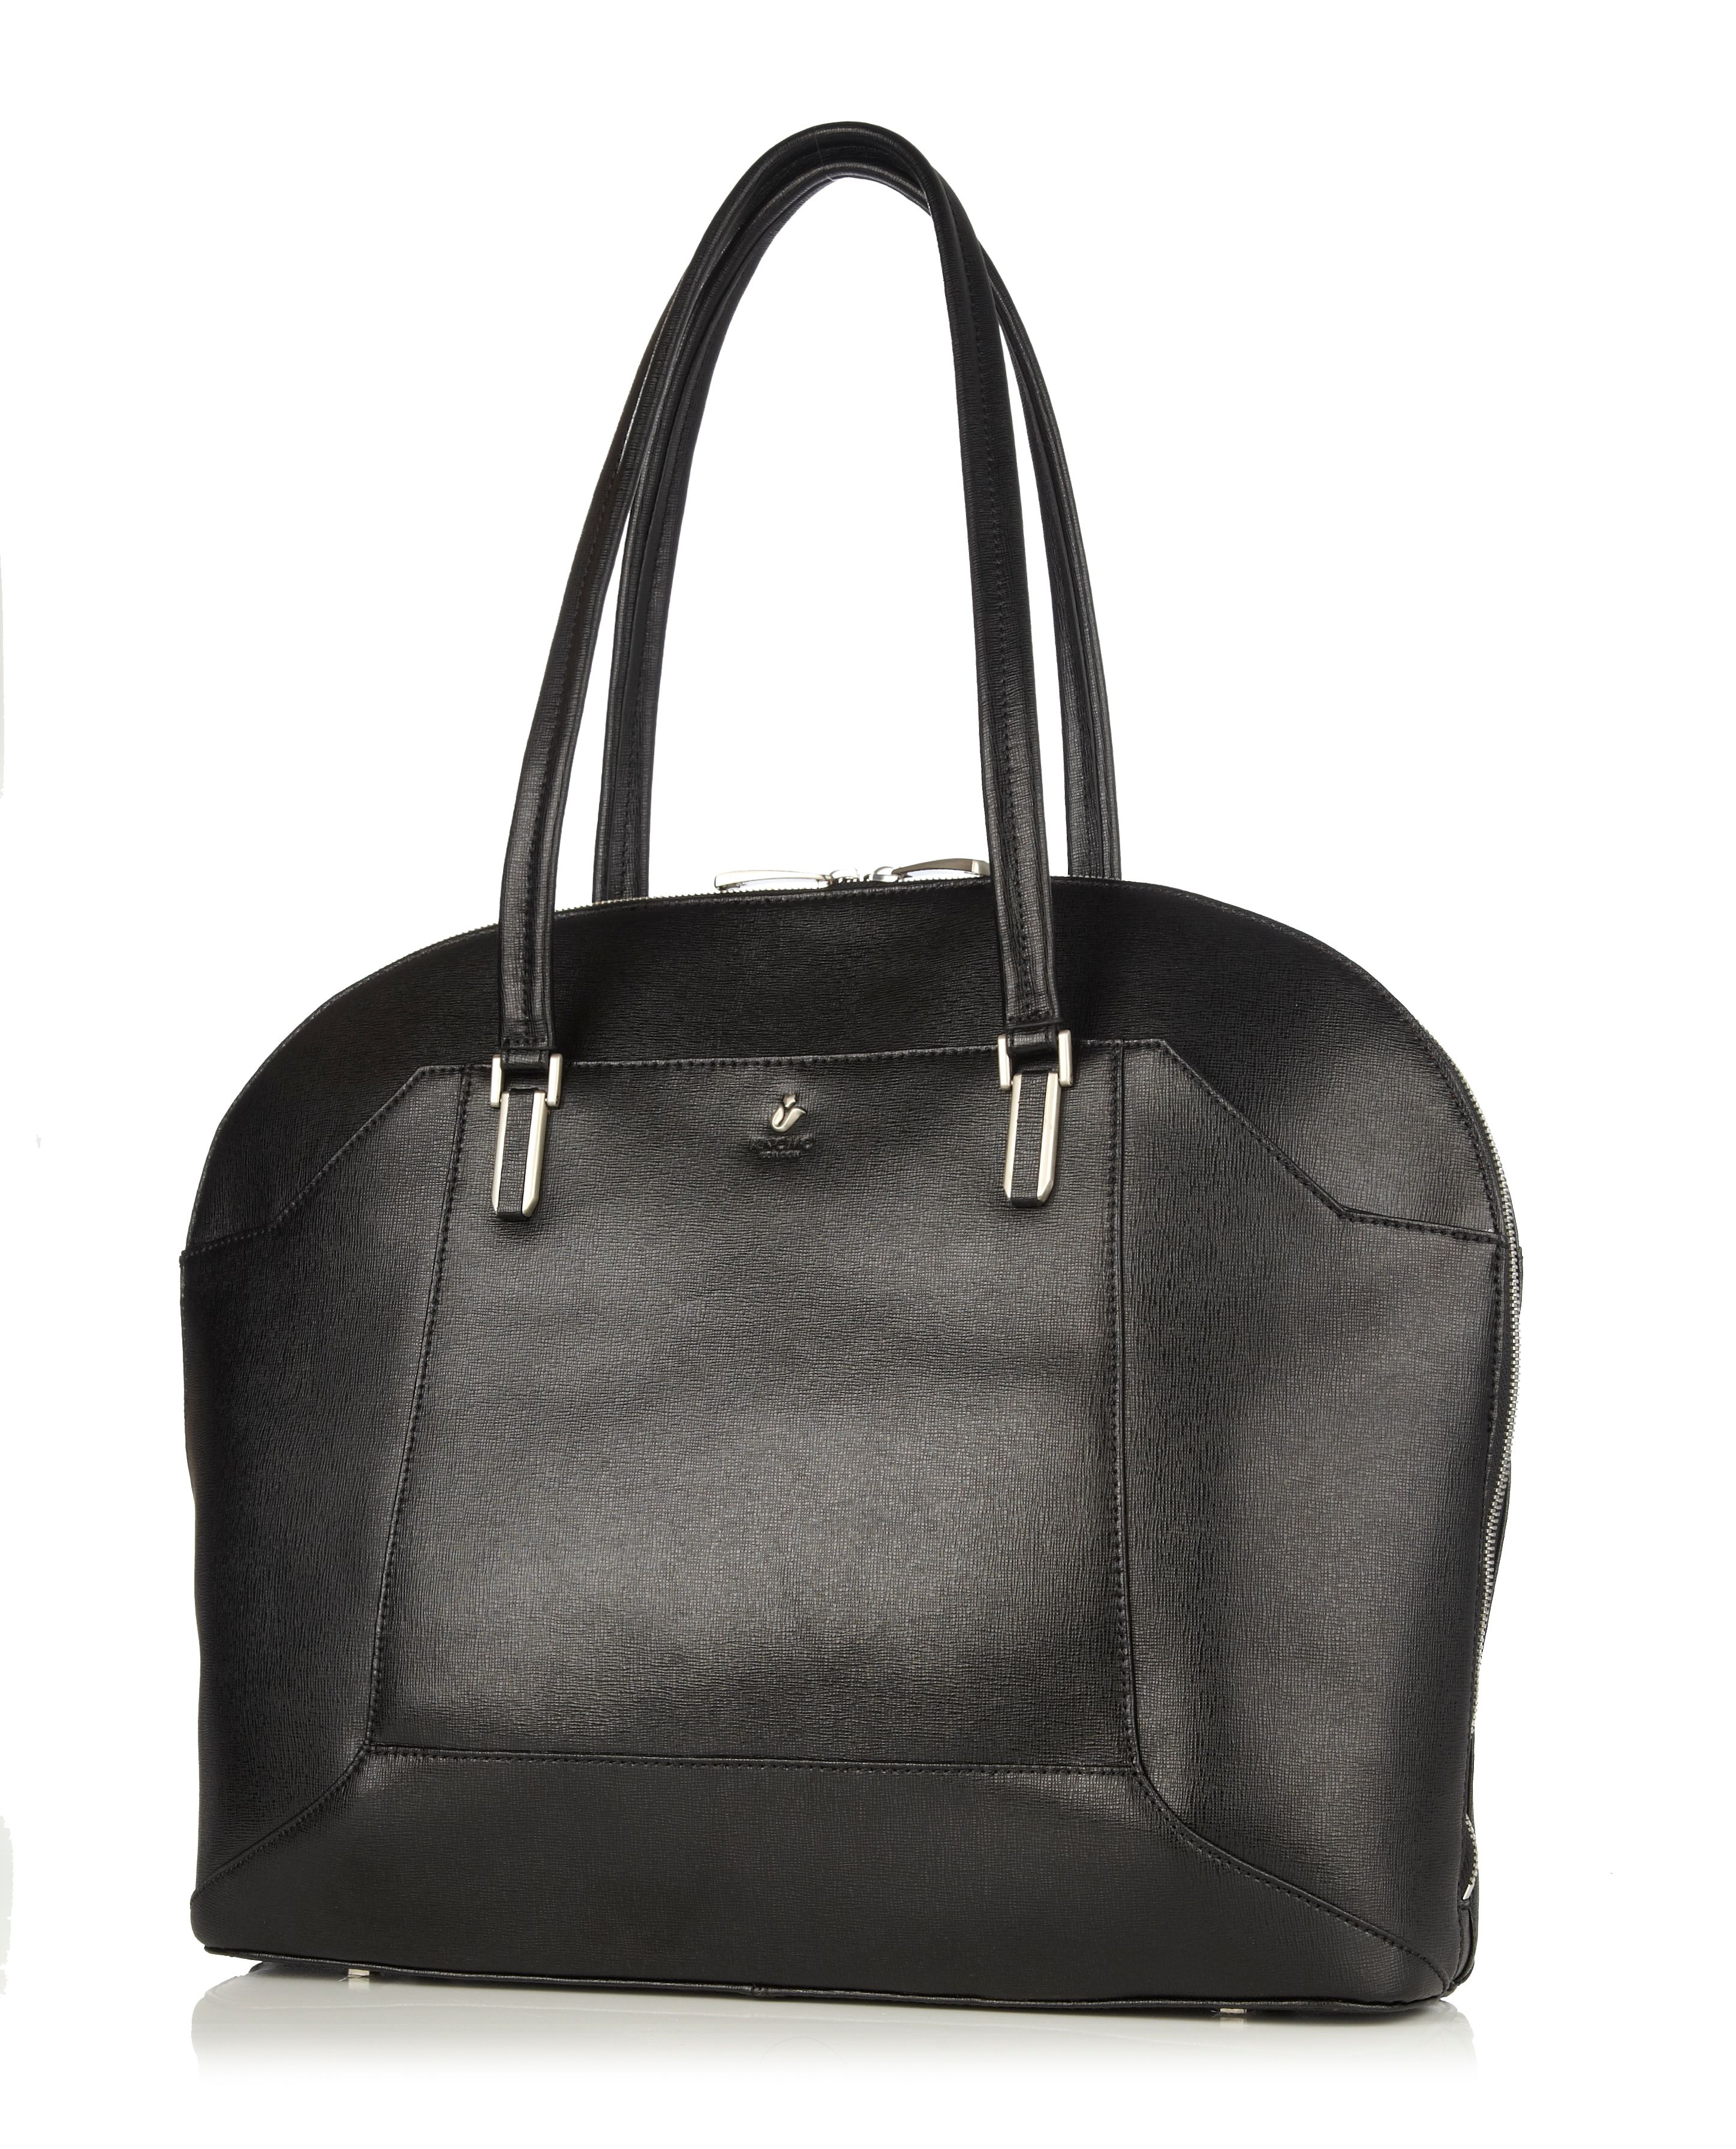 Beaumount black shoulder bag